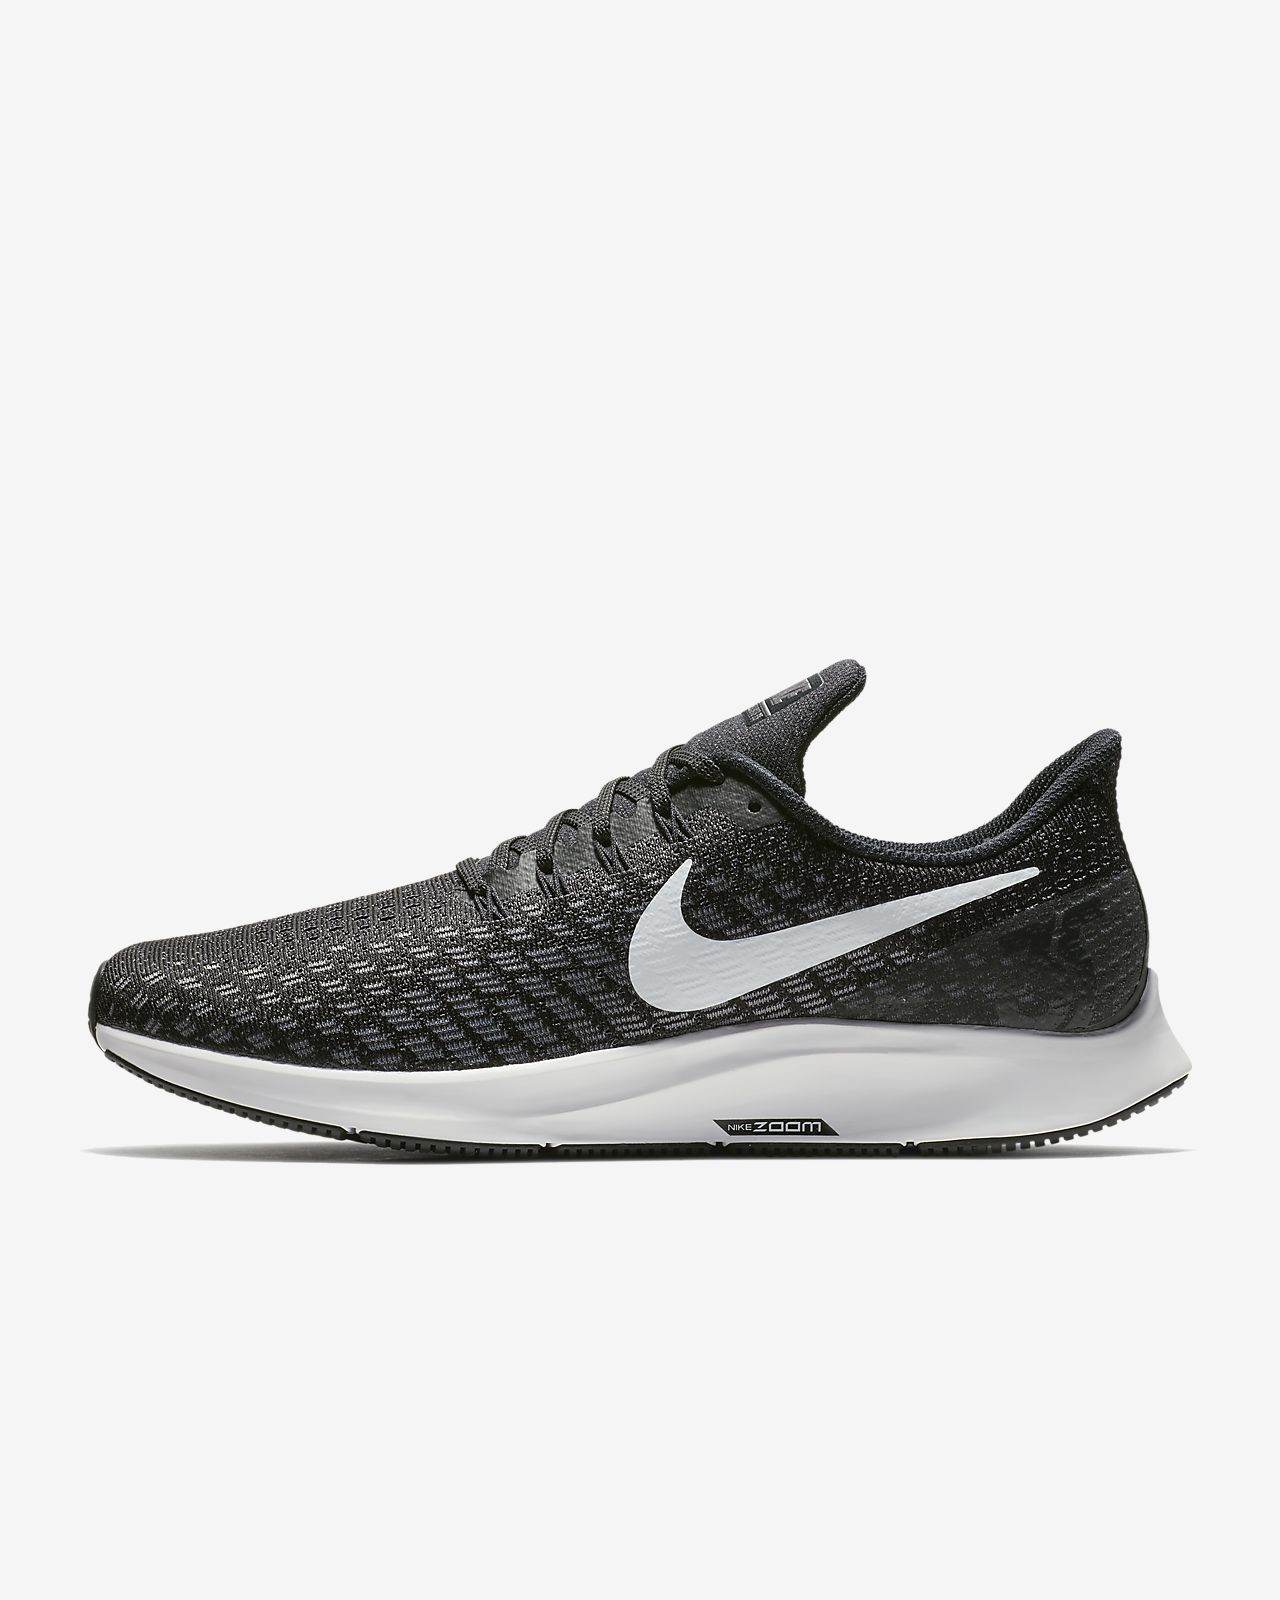 6bf9b7a8c6 Nike Air Zoom Pegasus 35 Men's Running Shoe. Nike.com